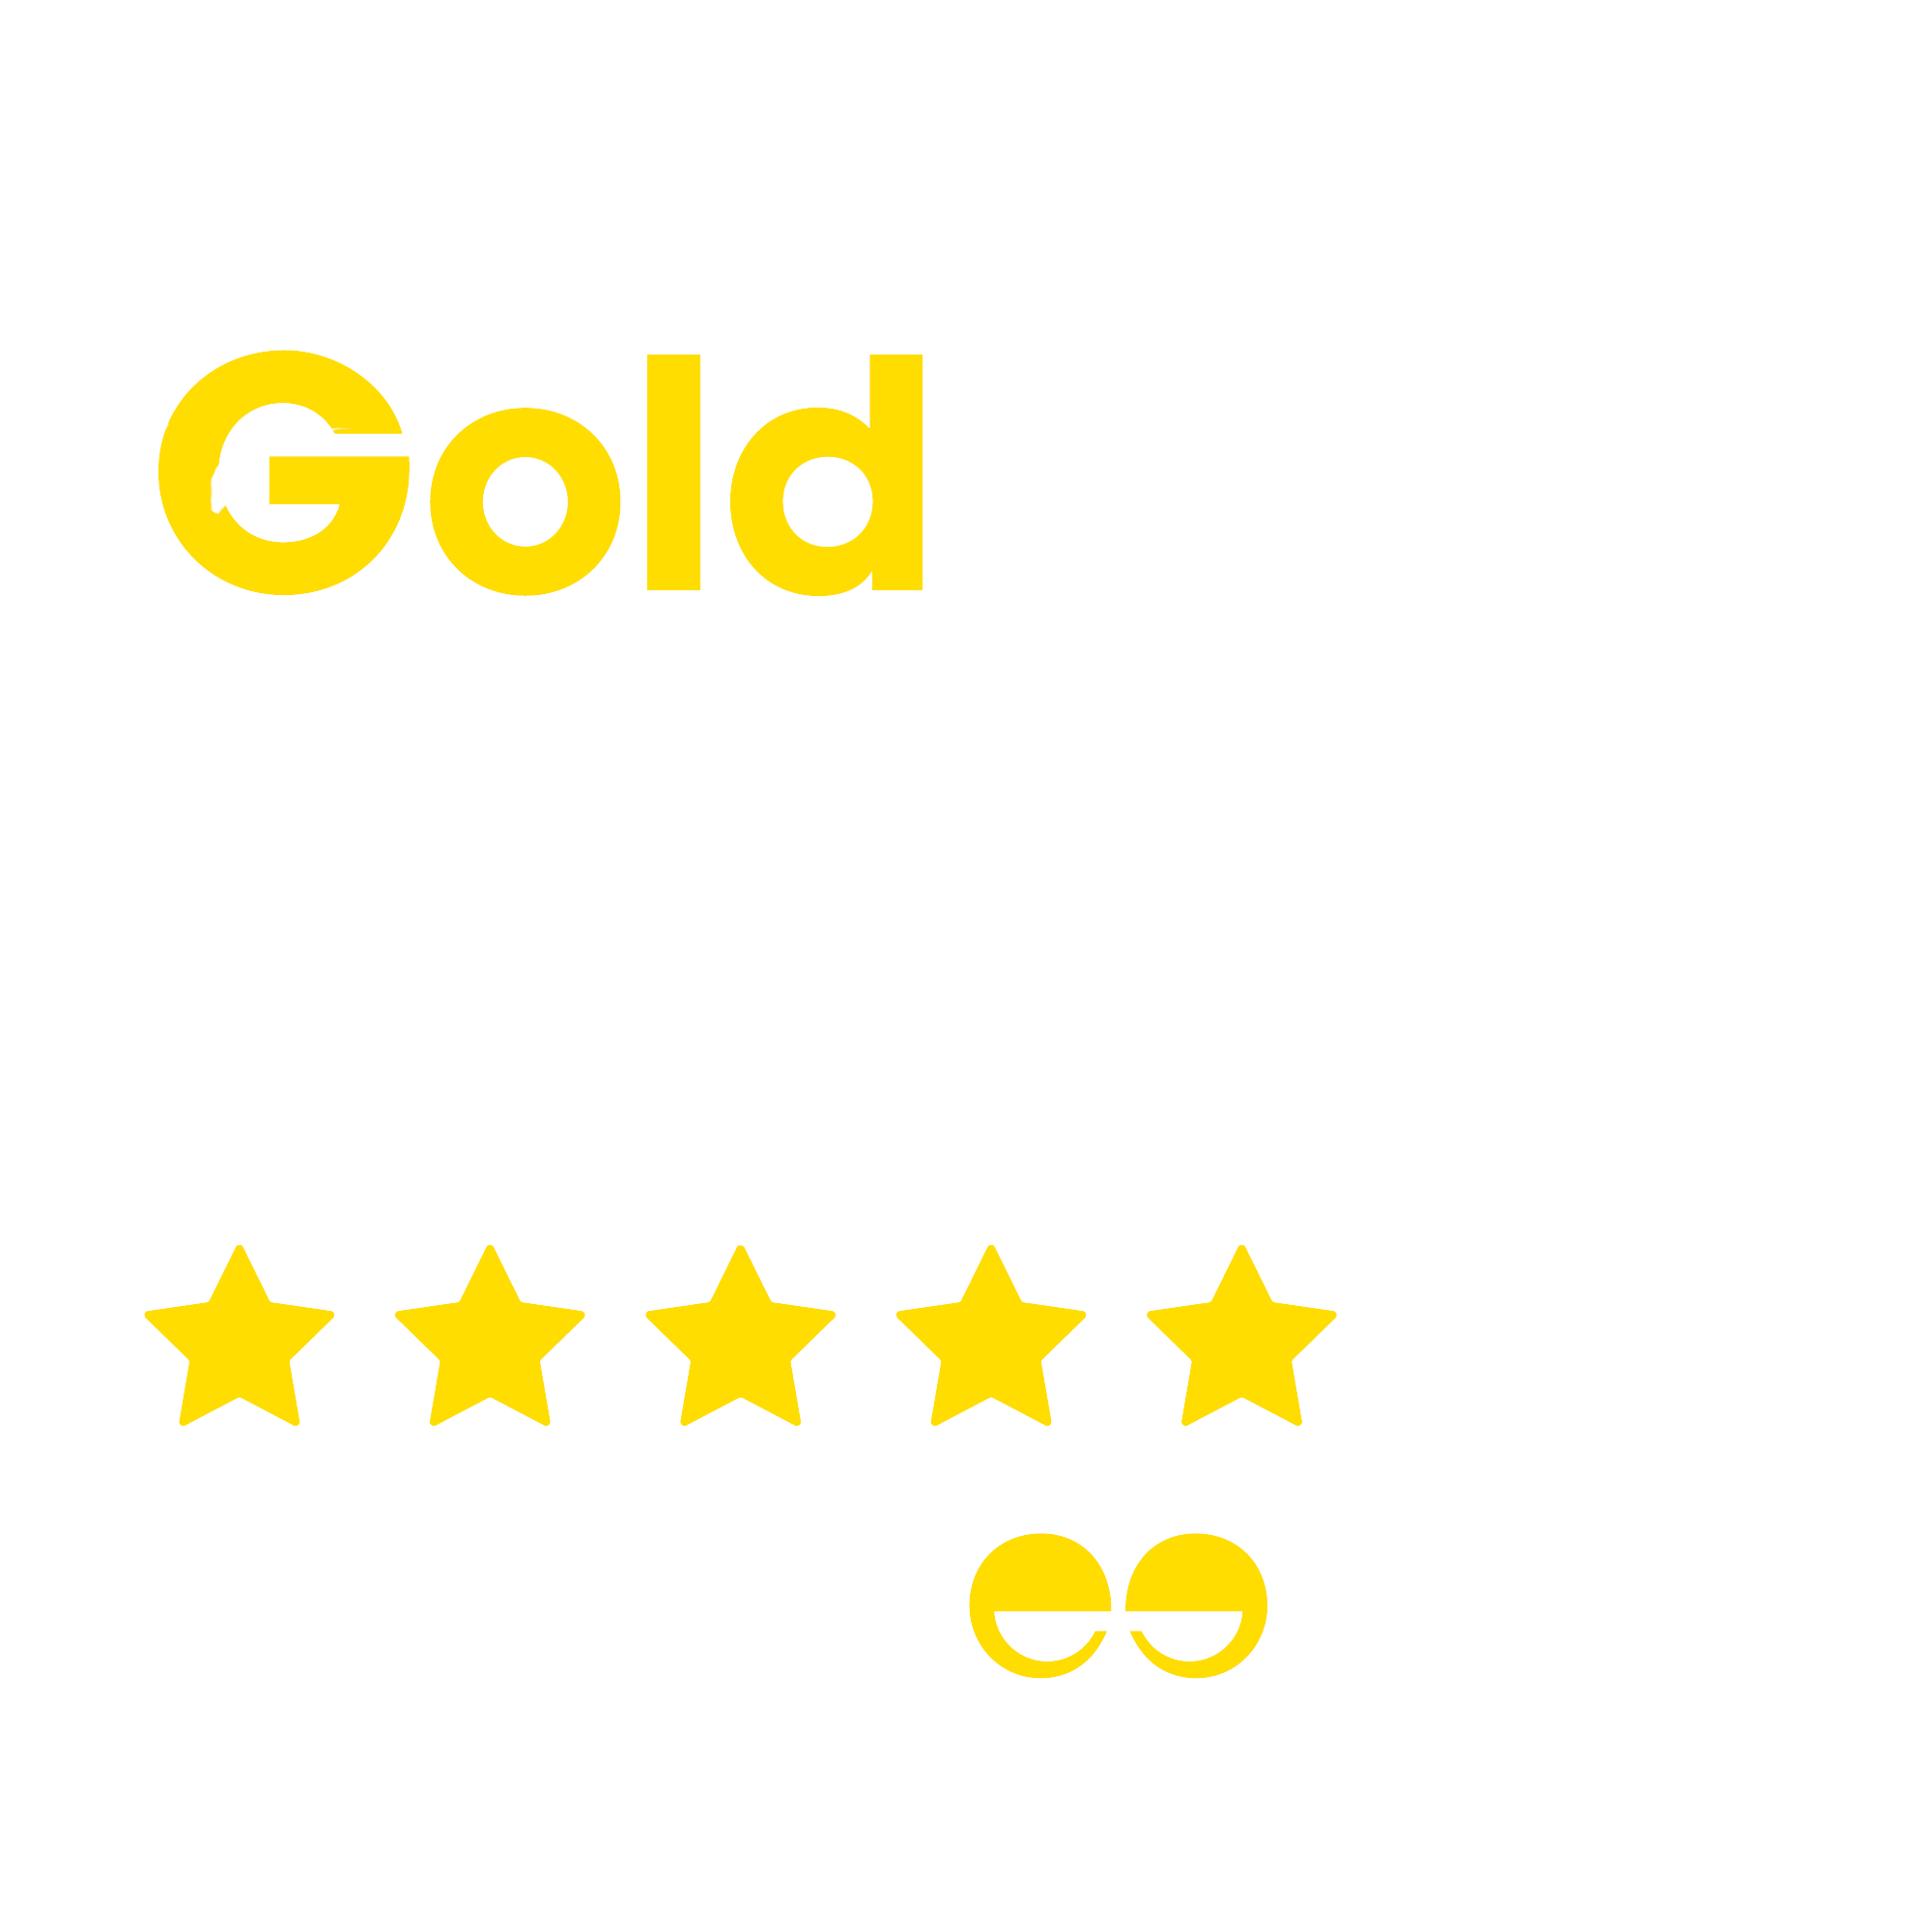 Moneycorp Online Currency Exchange Services Uk Red Dot Ac Unit Wiring Feefo Gold Service Award